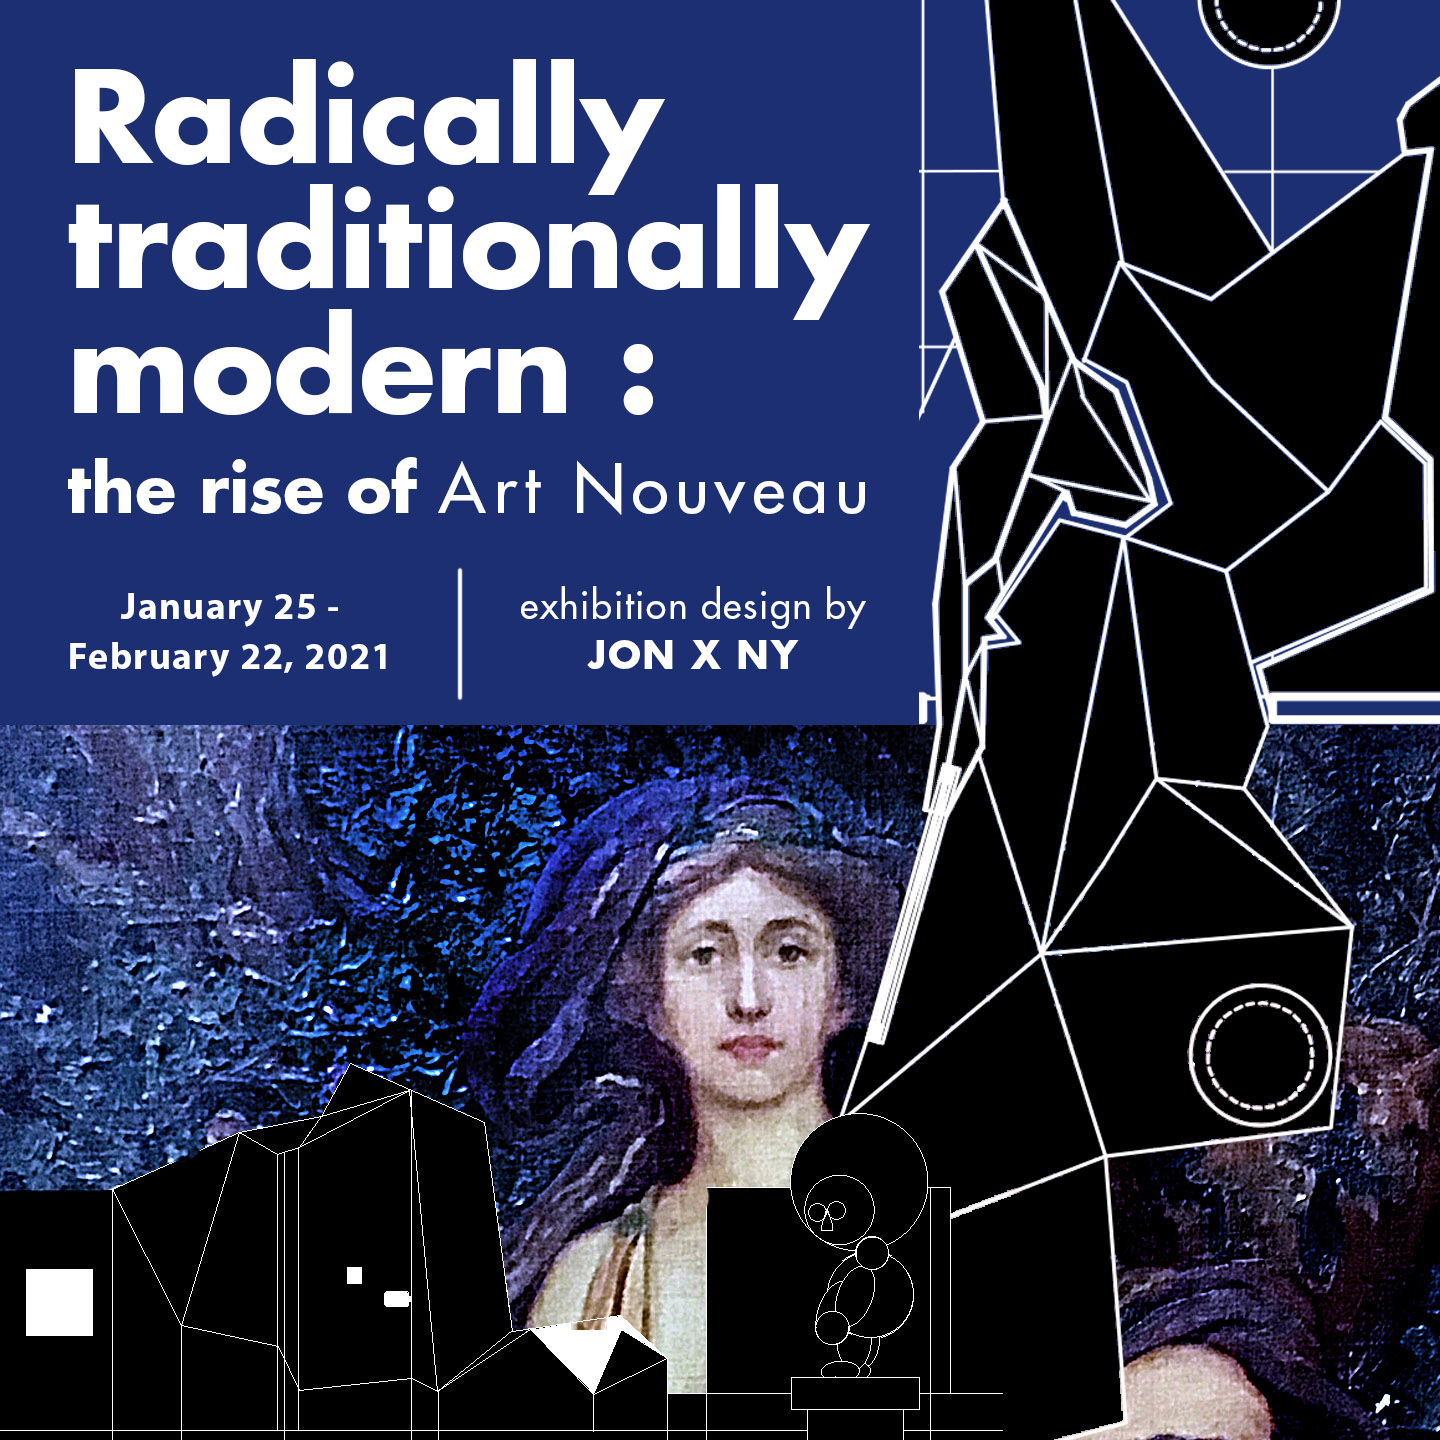 Radically traditionally modern : the rise of Art Nouveau